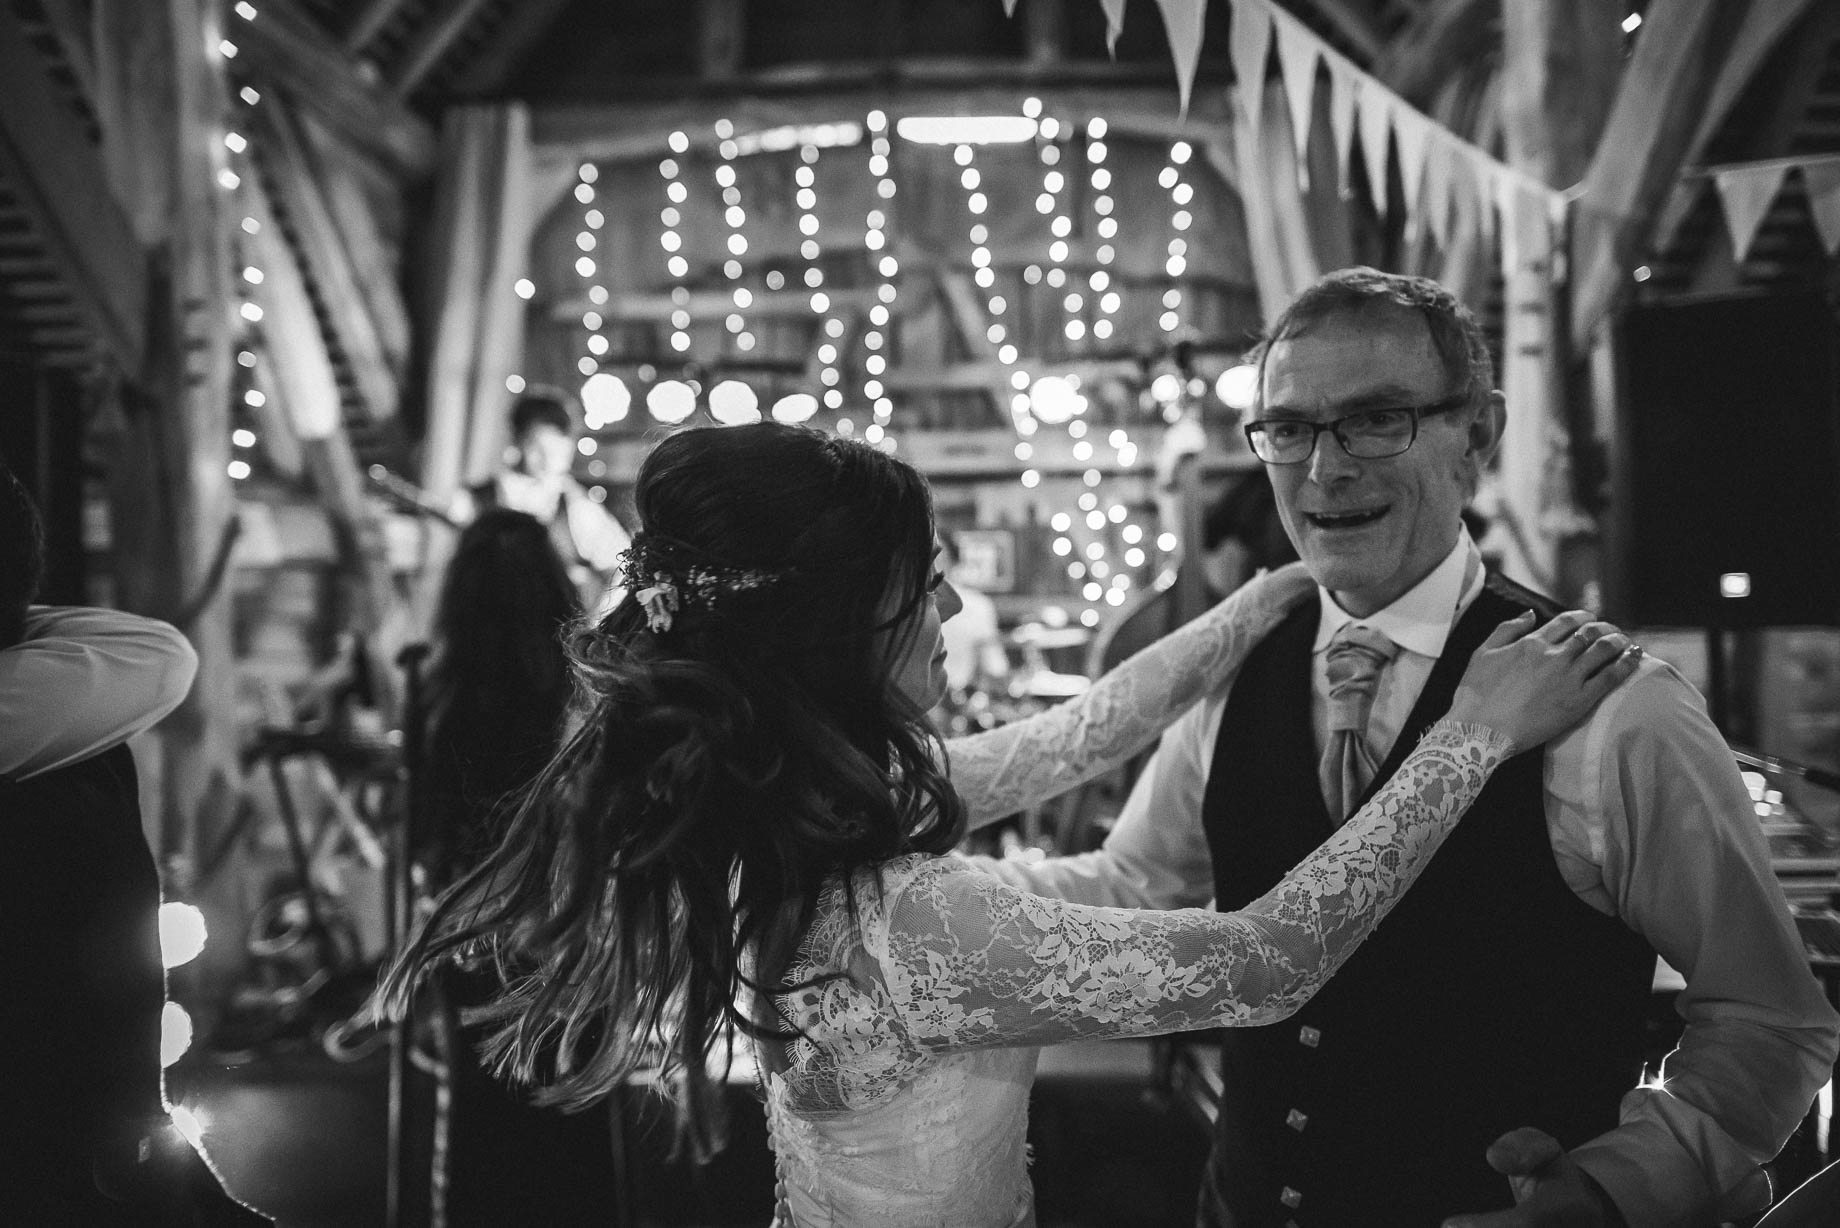 Gildings Barn wedding photography - Sarah and Steve (190 of 190)